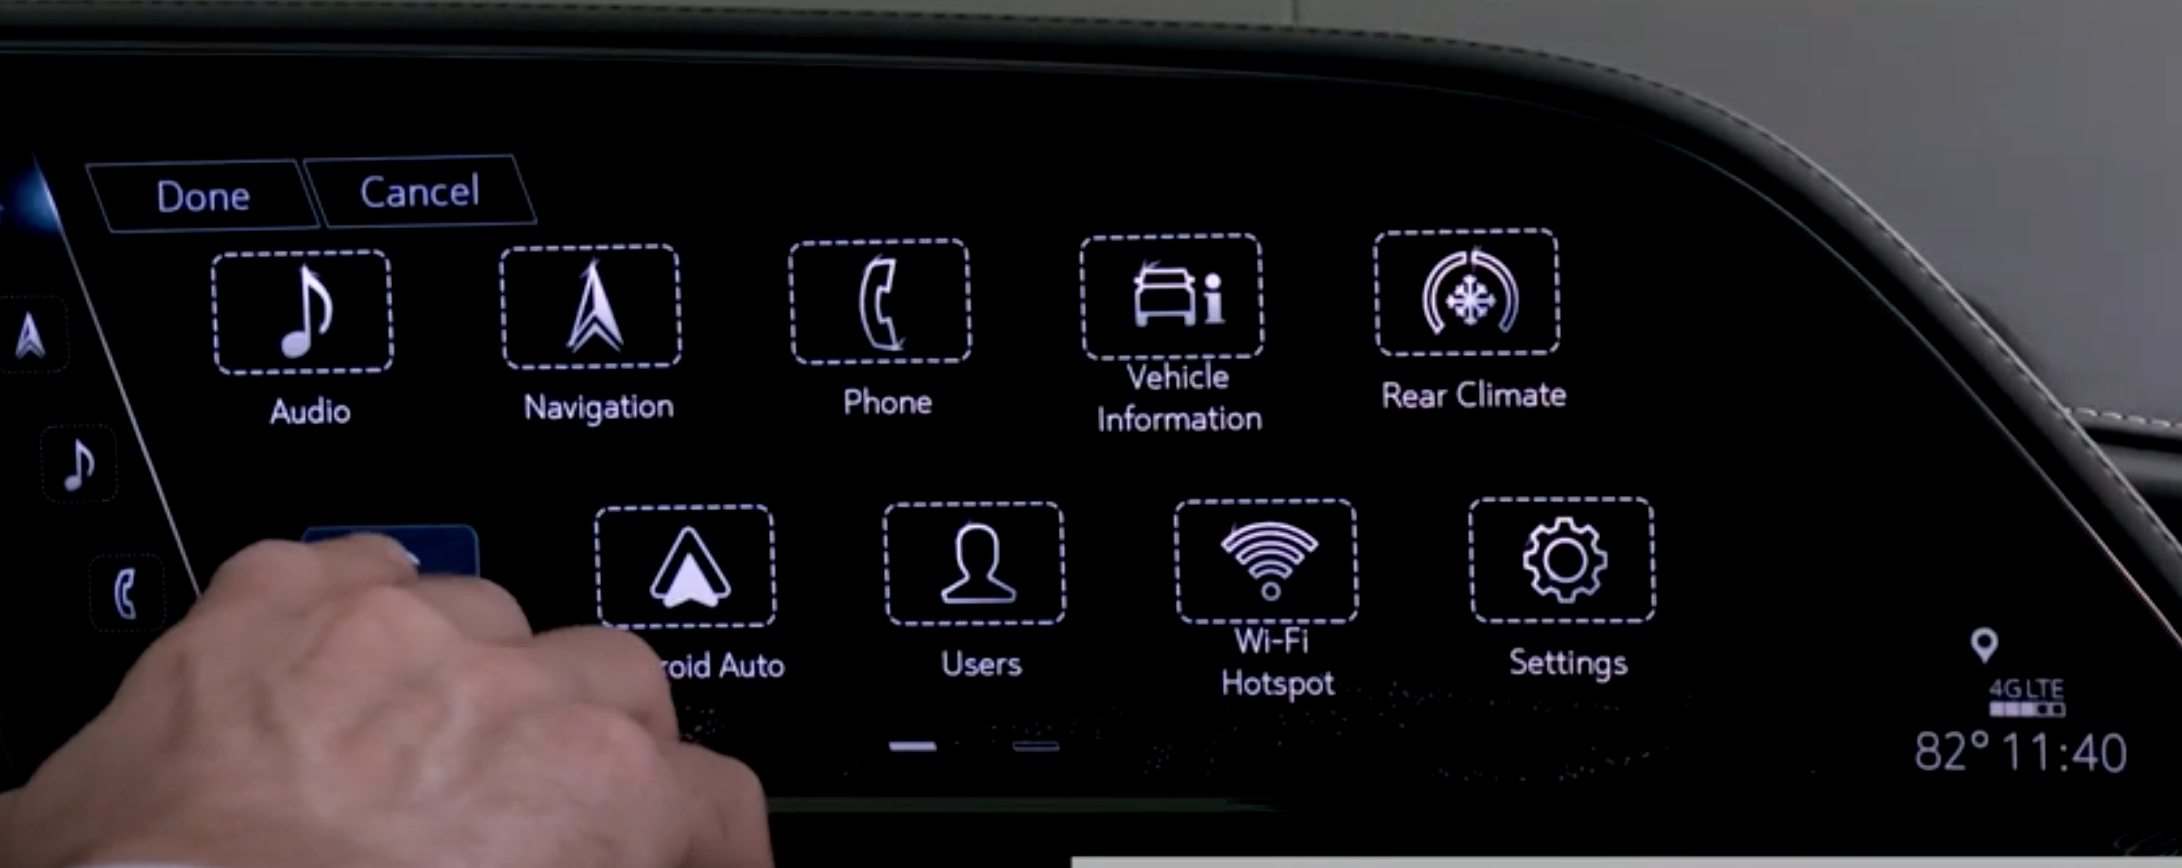 Customizing the order of various apps that are on the infotainment screen